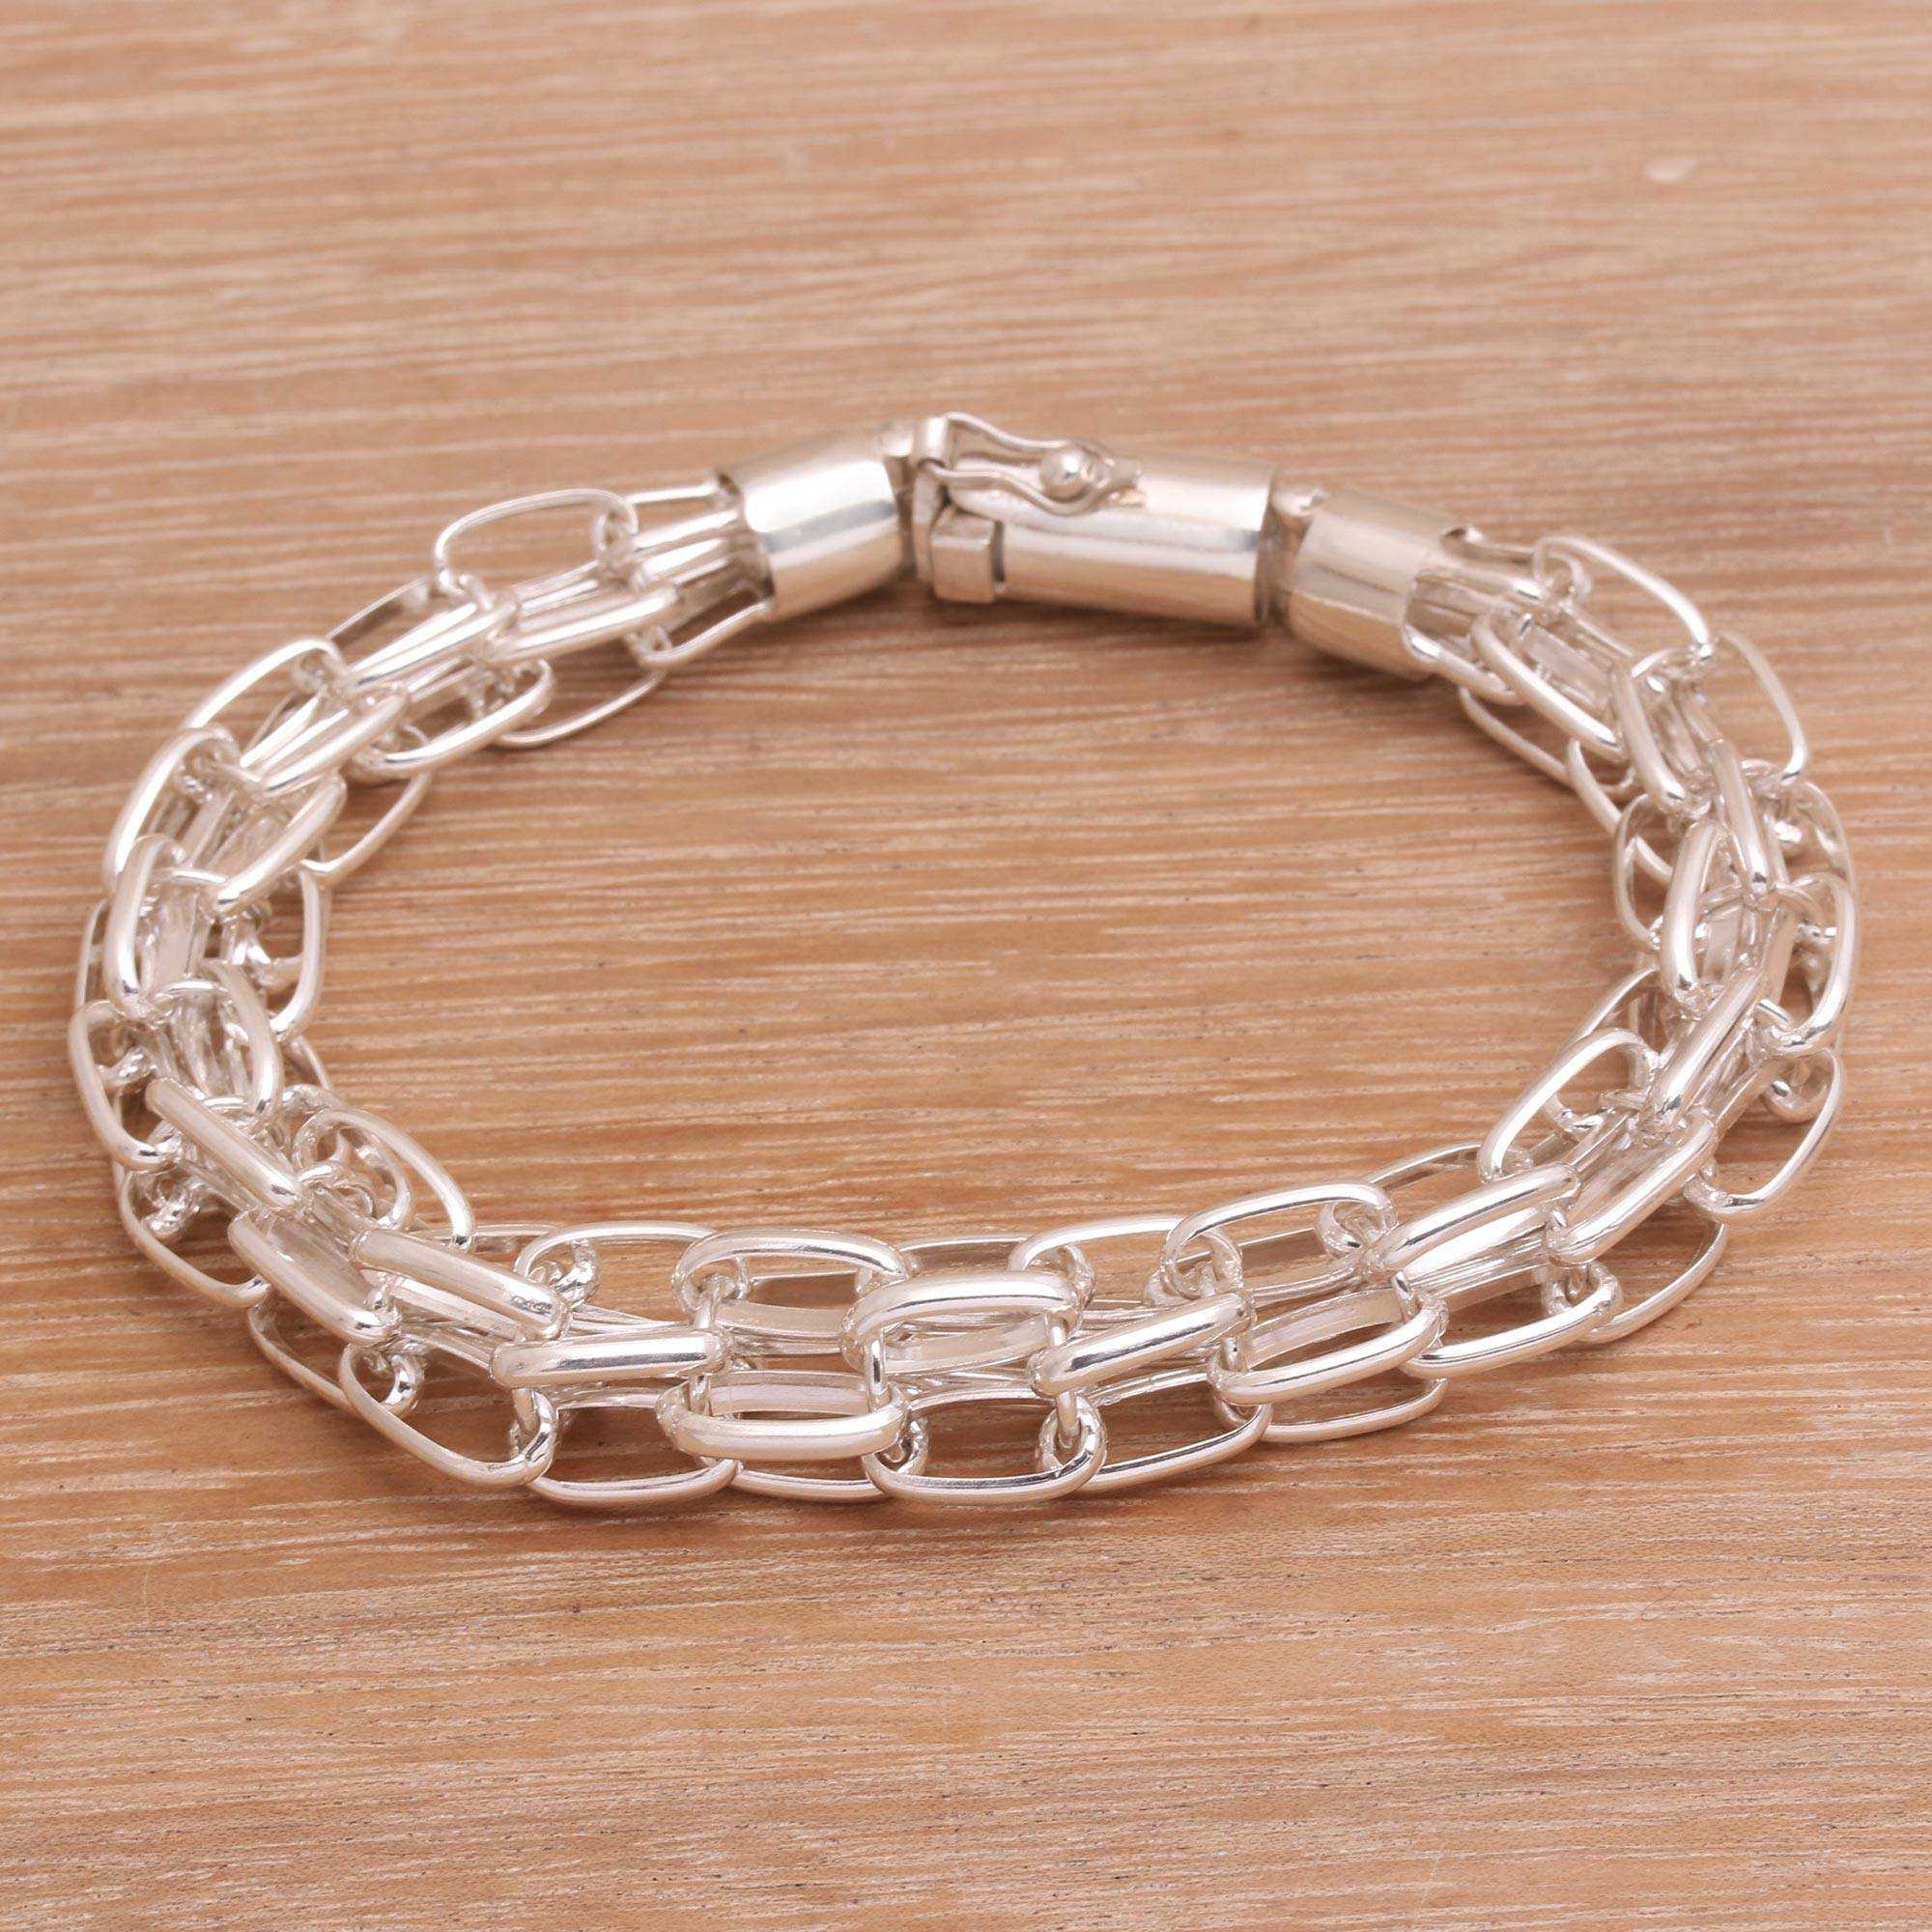 944af21f68cb Men s Sterling Silver Chain Bracelet from Bali - Pioneer